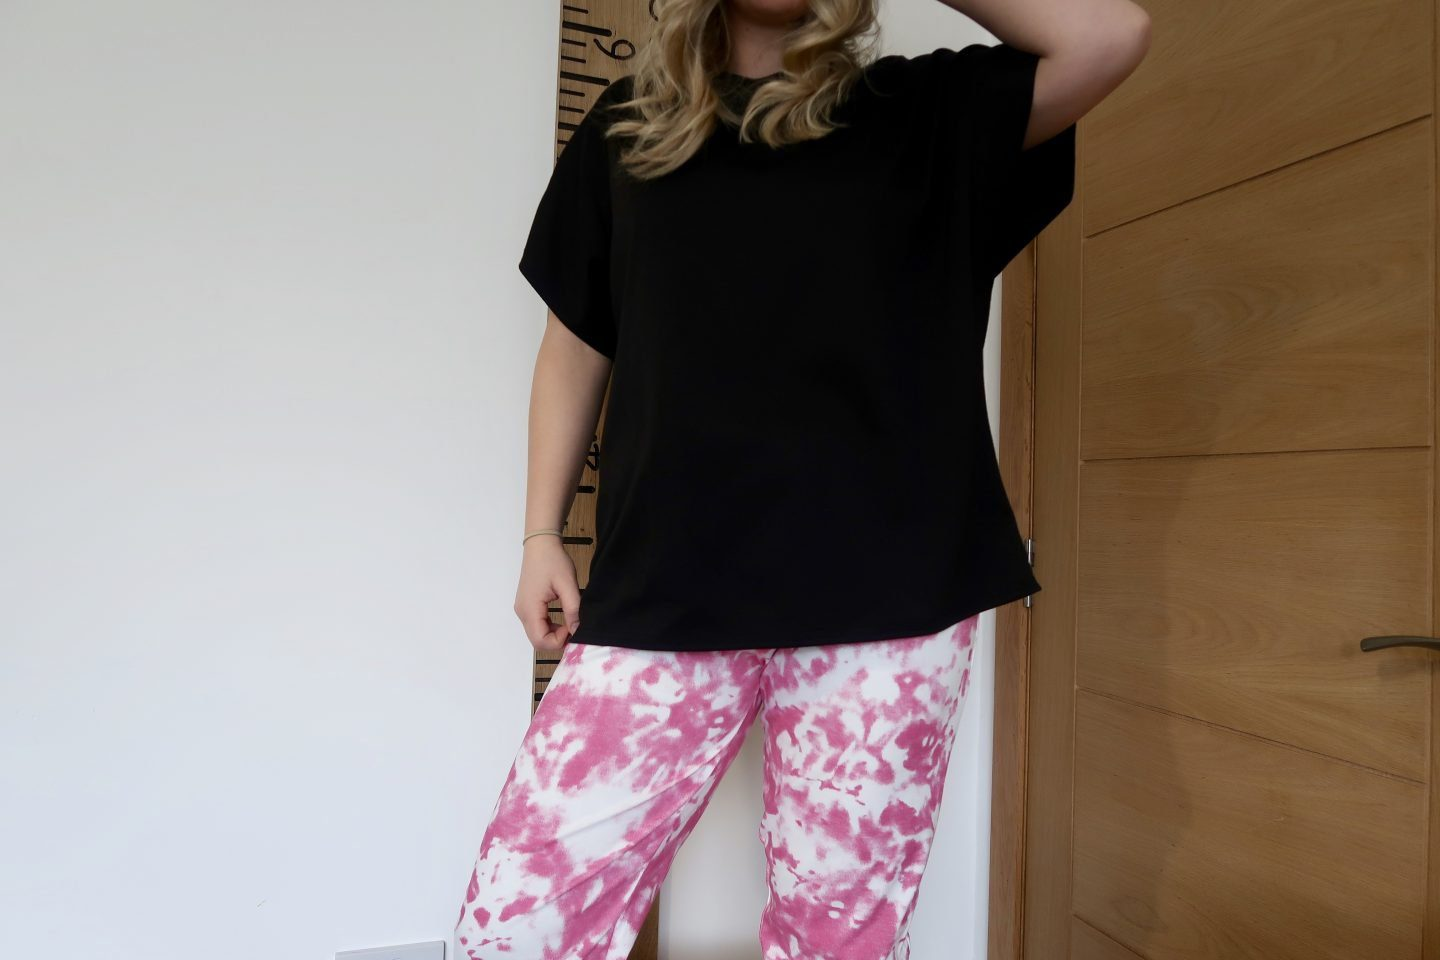 The torso of a woman wearing a black t-shirt and pink and white tie-dye joggers